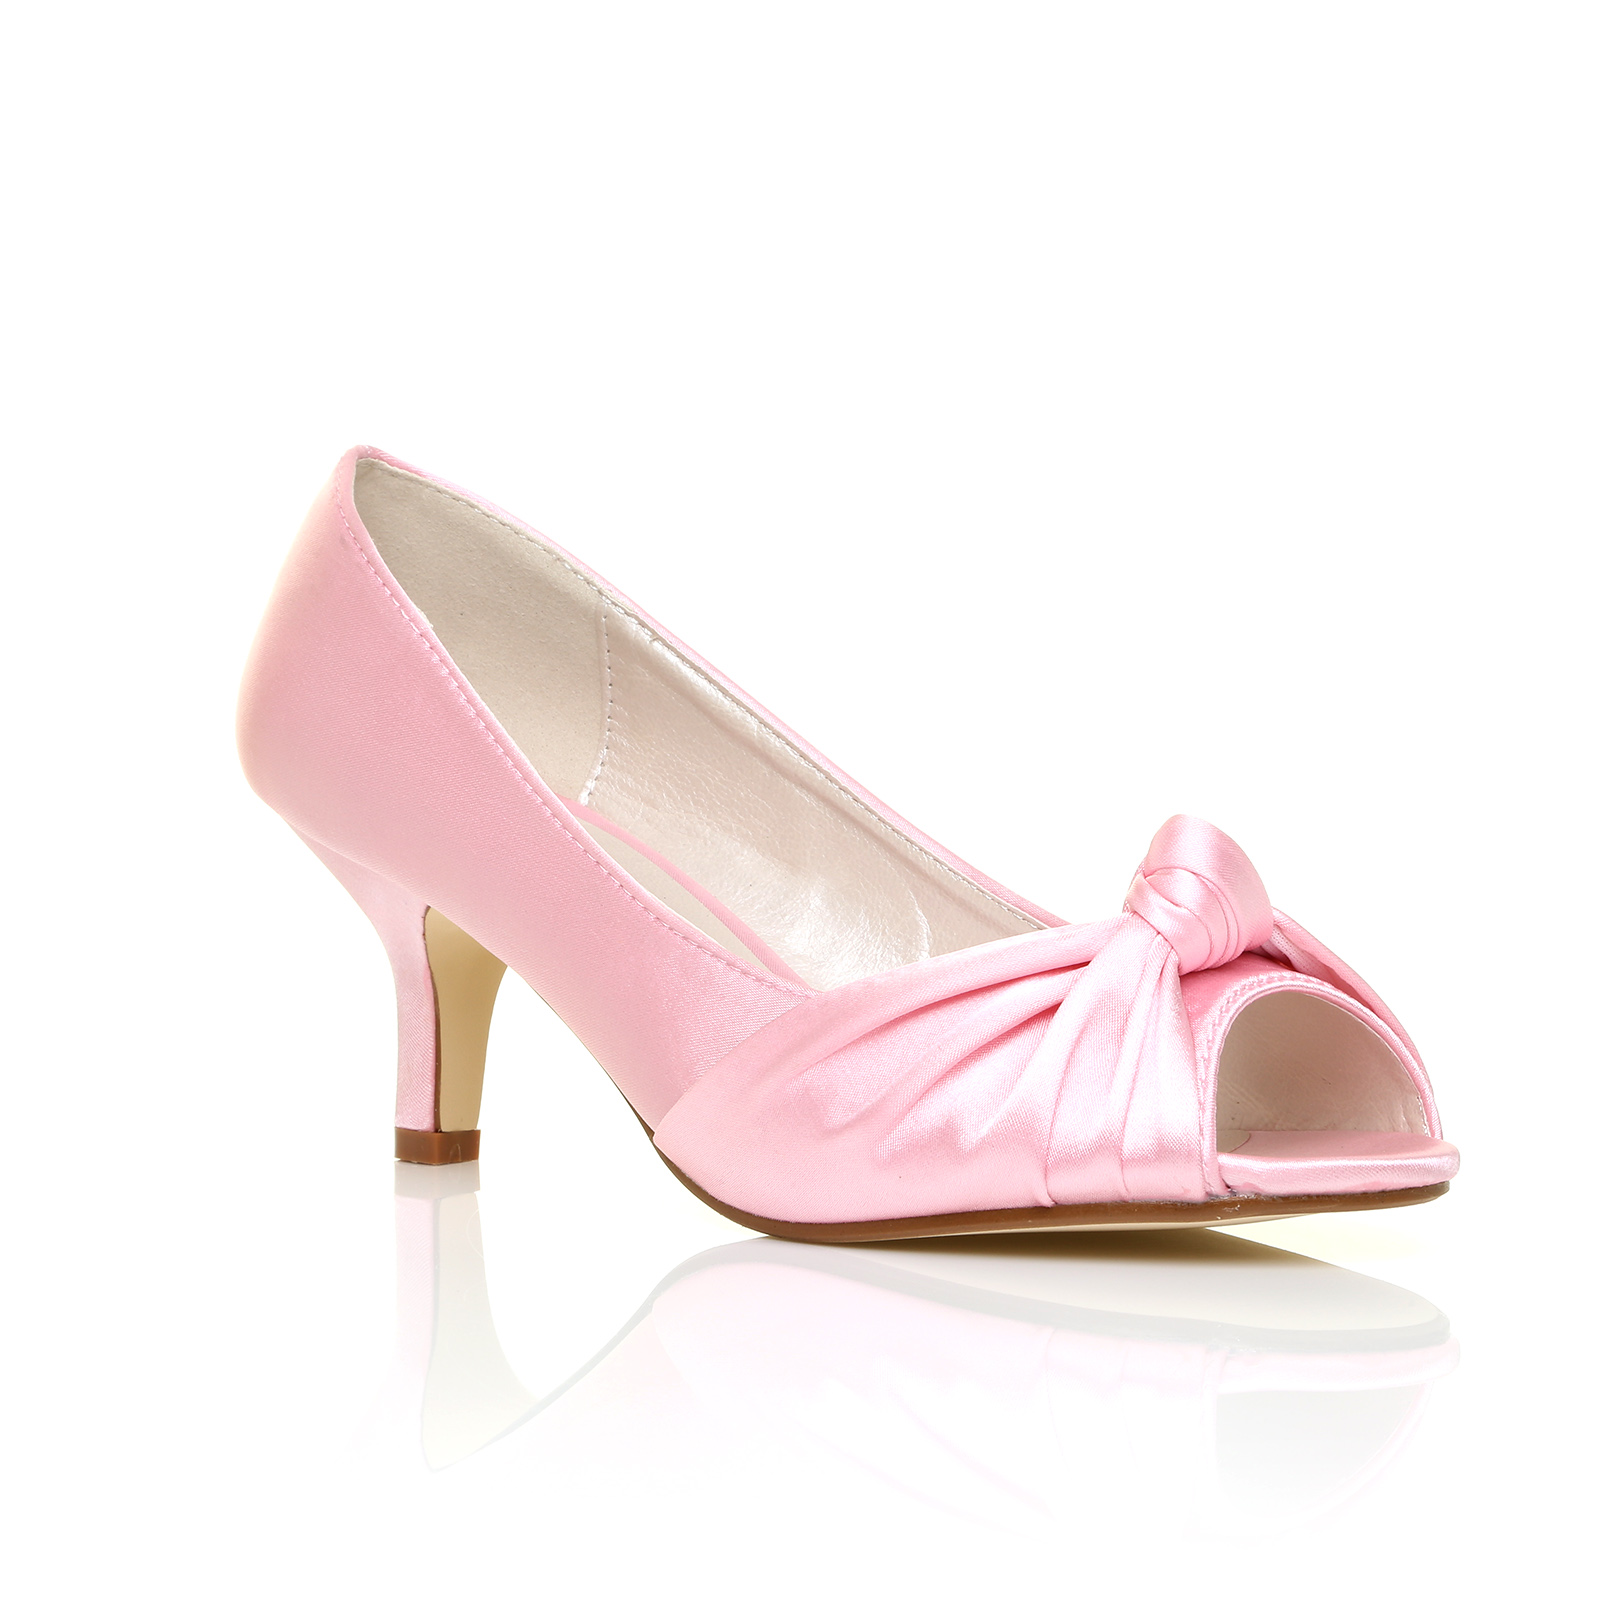 Pink Low Heel Wedding Shoes: WOMENS WEDDING BRIDAL LADIES PROM SHOES LOW HEEL